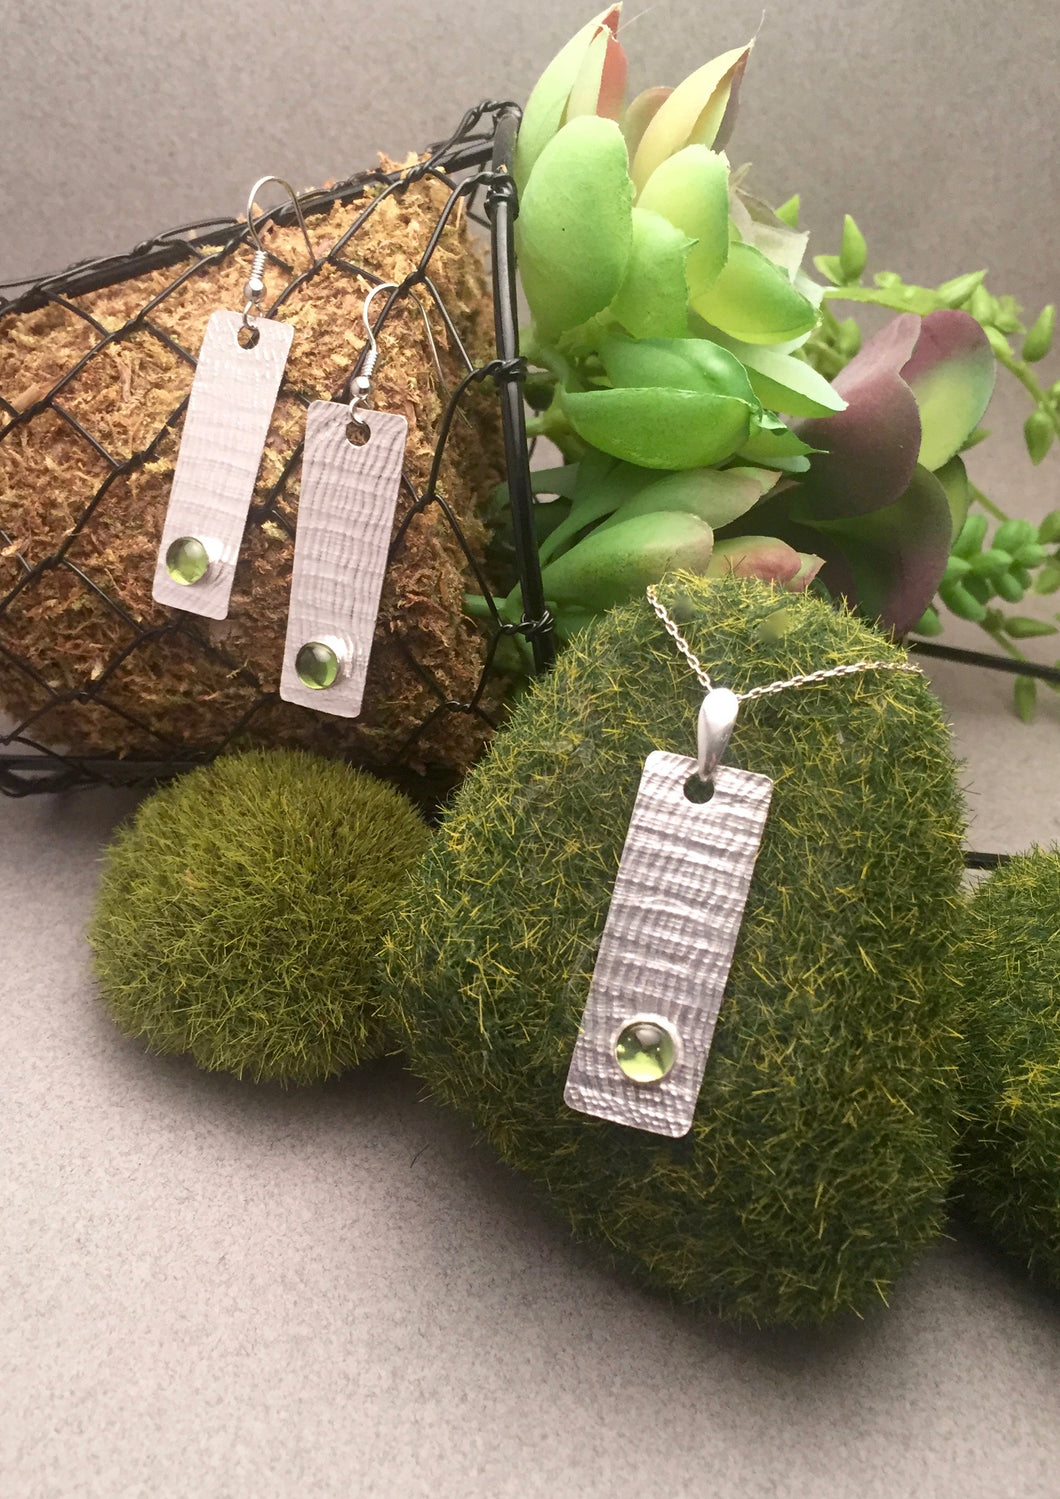 6mm Peridot on Textured Backplate Pendant